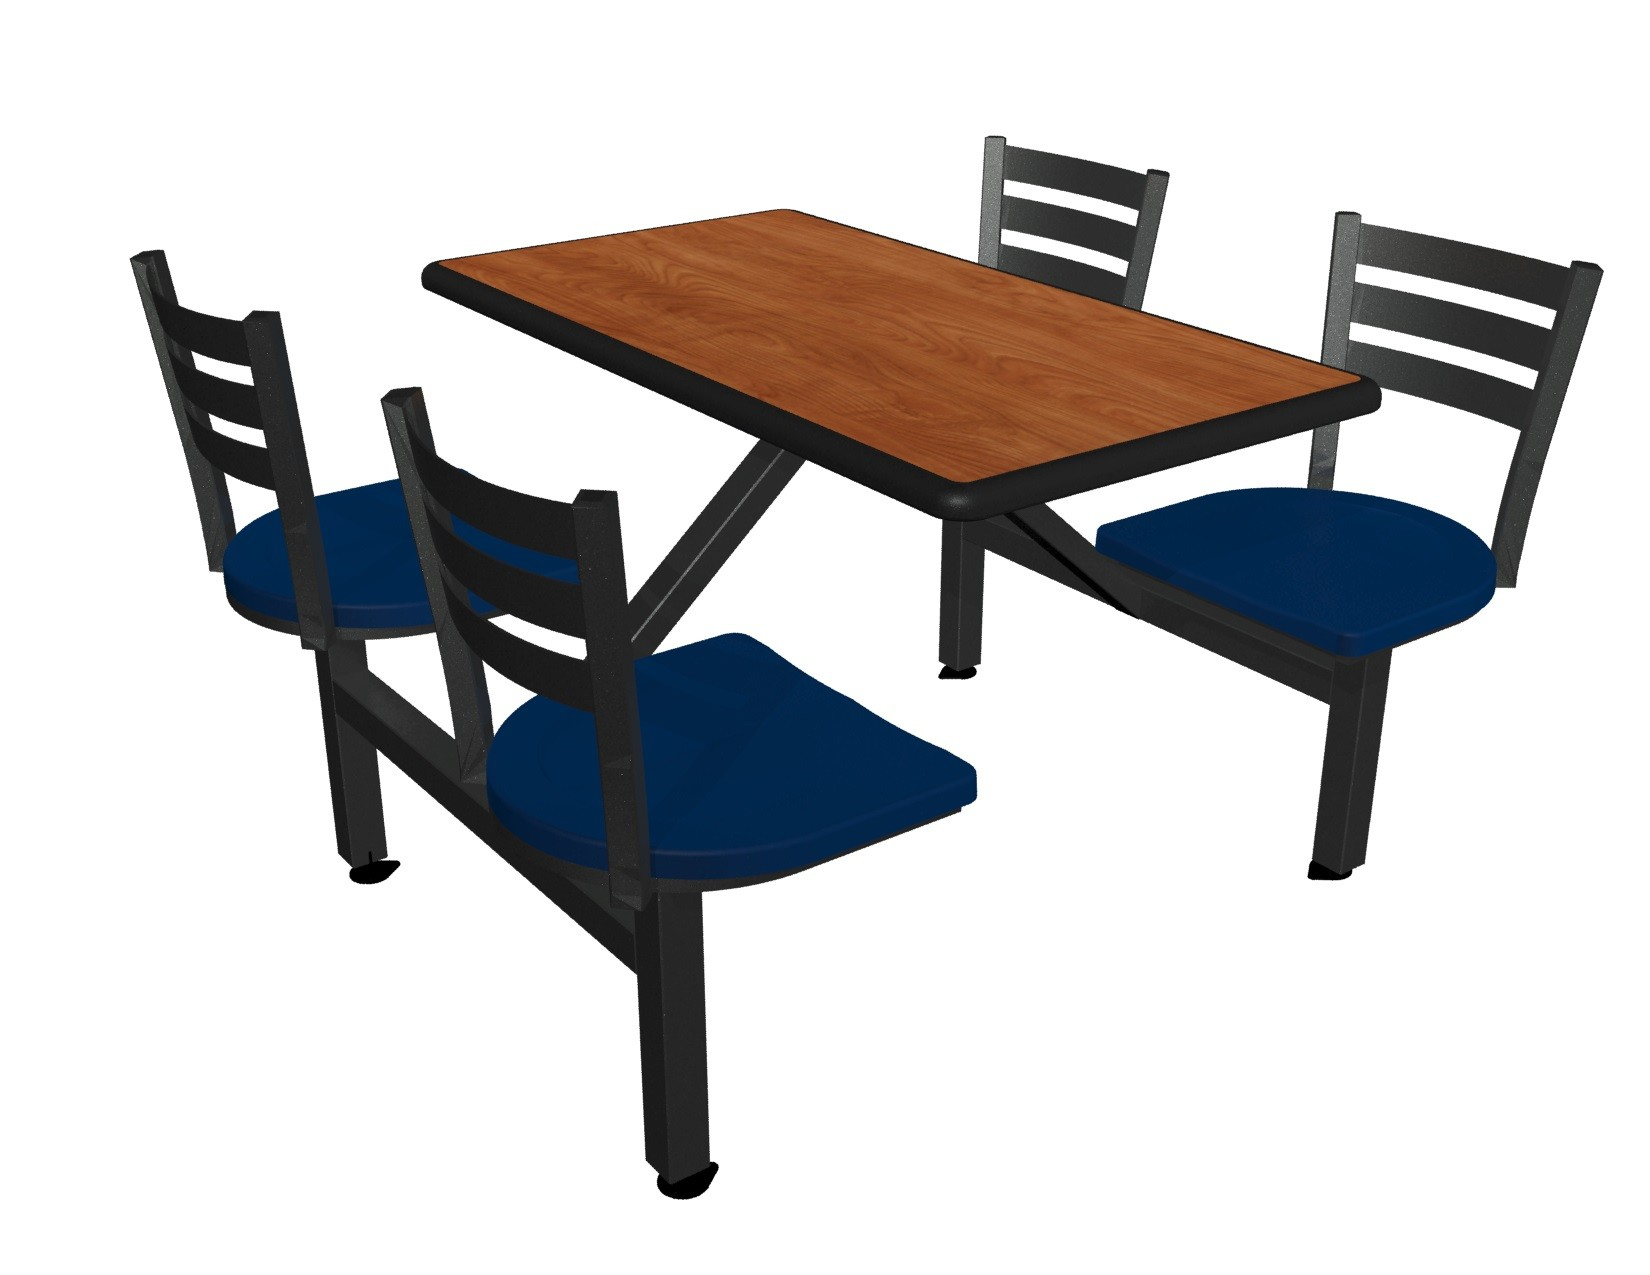 Wild Cherry laminate table top, Black Dur-A-Edge®, Quest chairhead with Atlantis seat